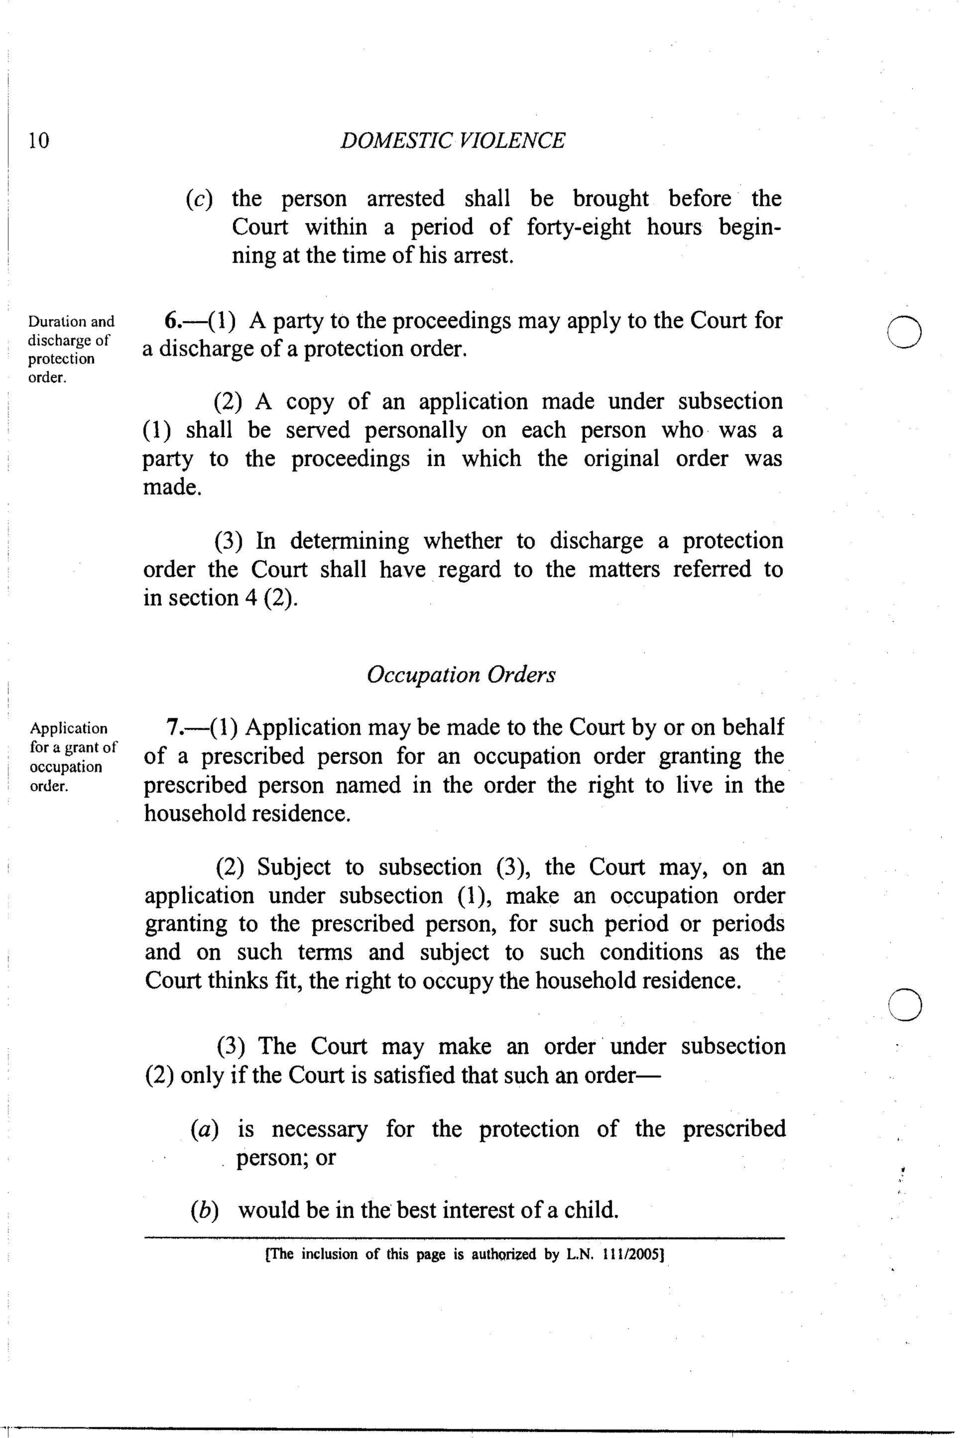 (2) A copy of an application made under subsection (1) shall be served personally on each person who was a party to the proceedings in which the original order was made.